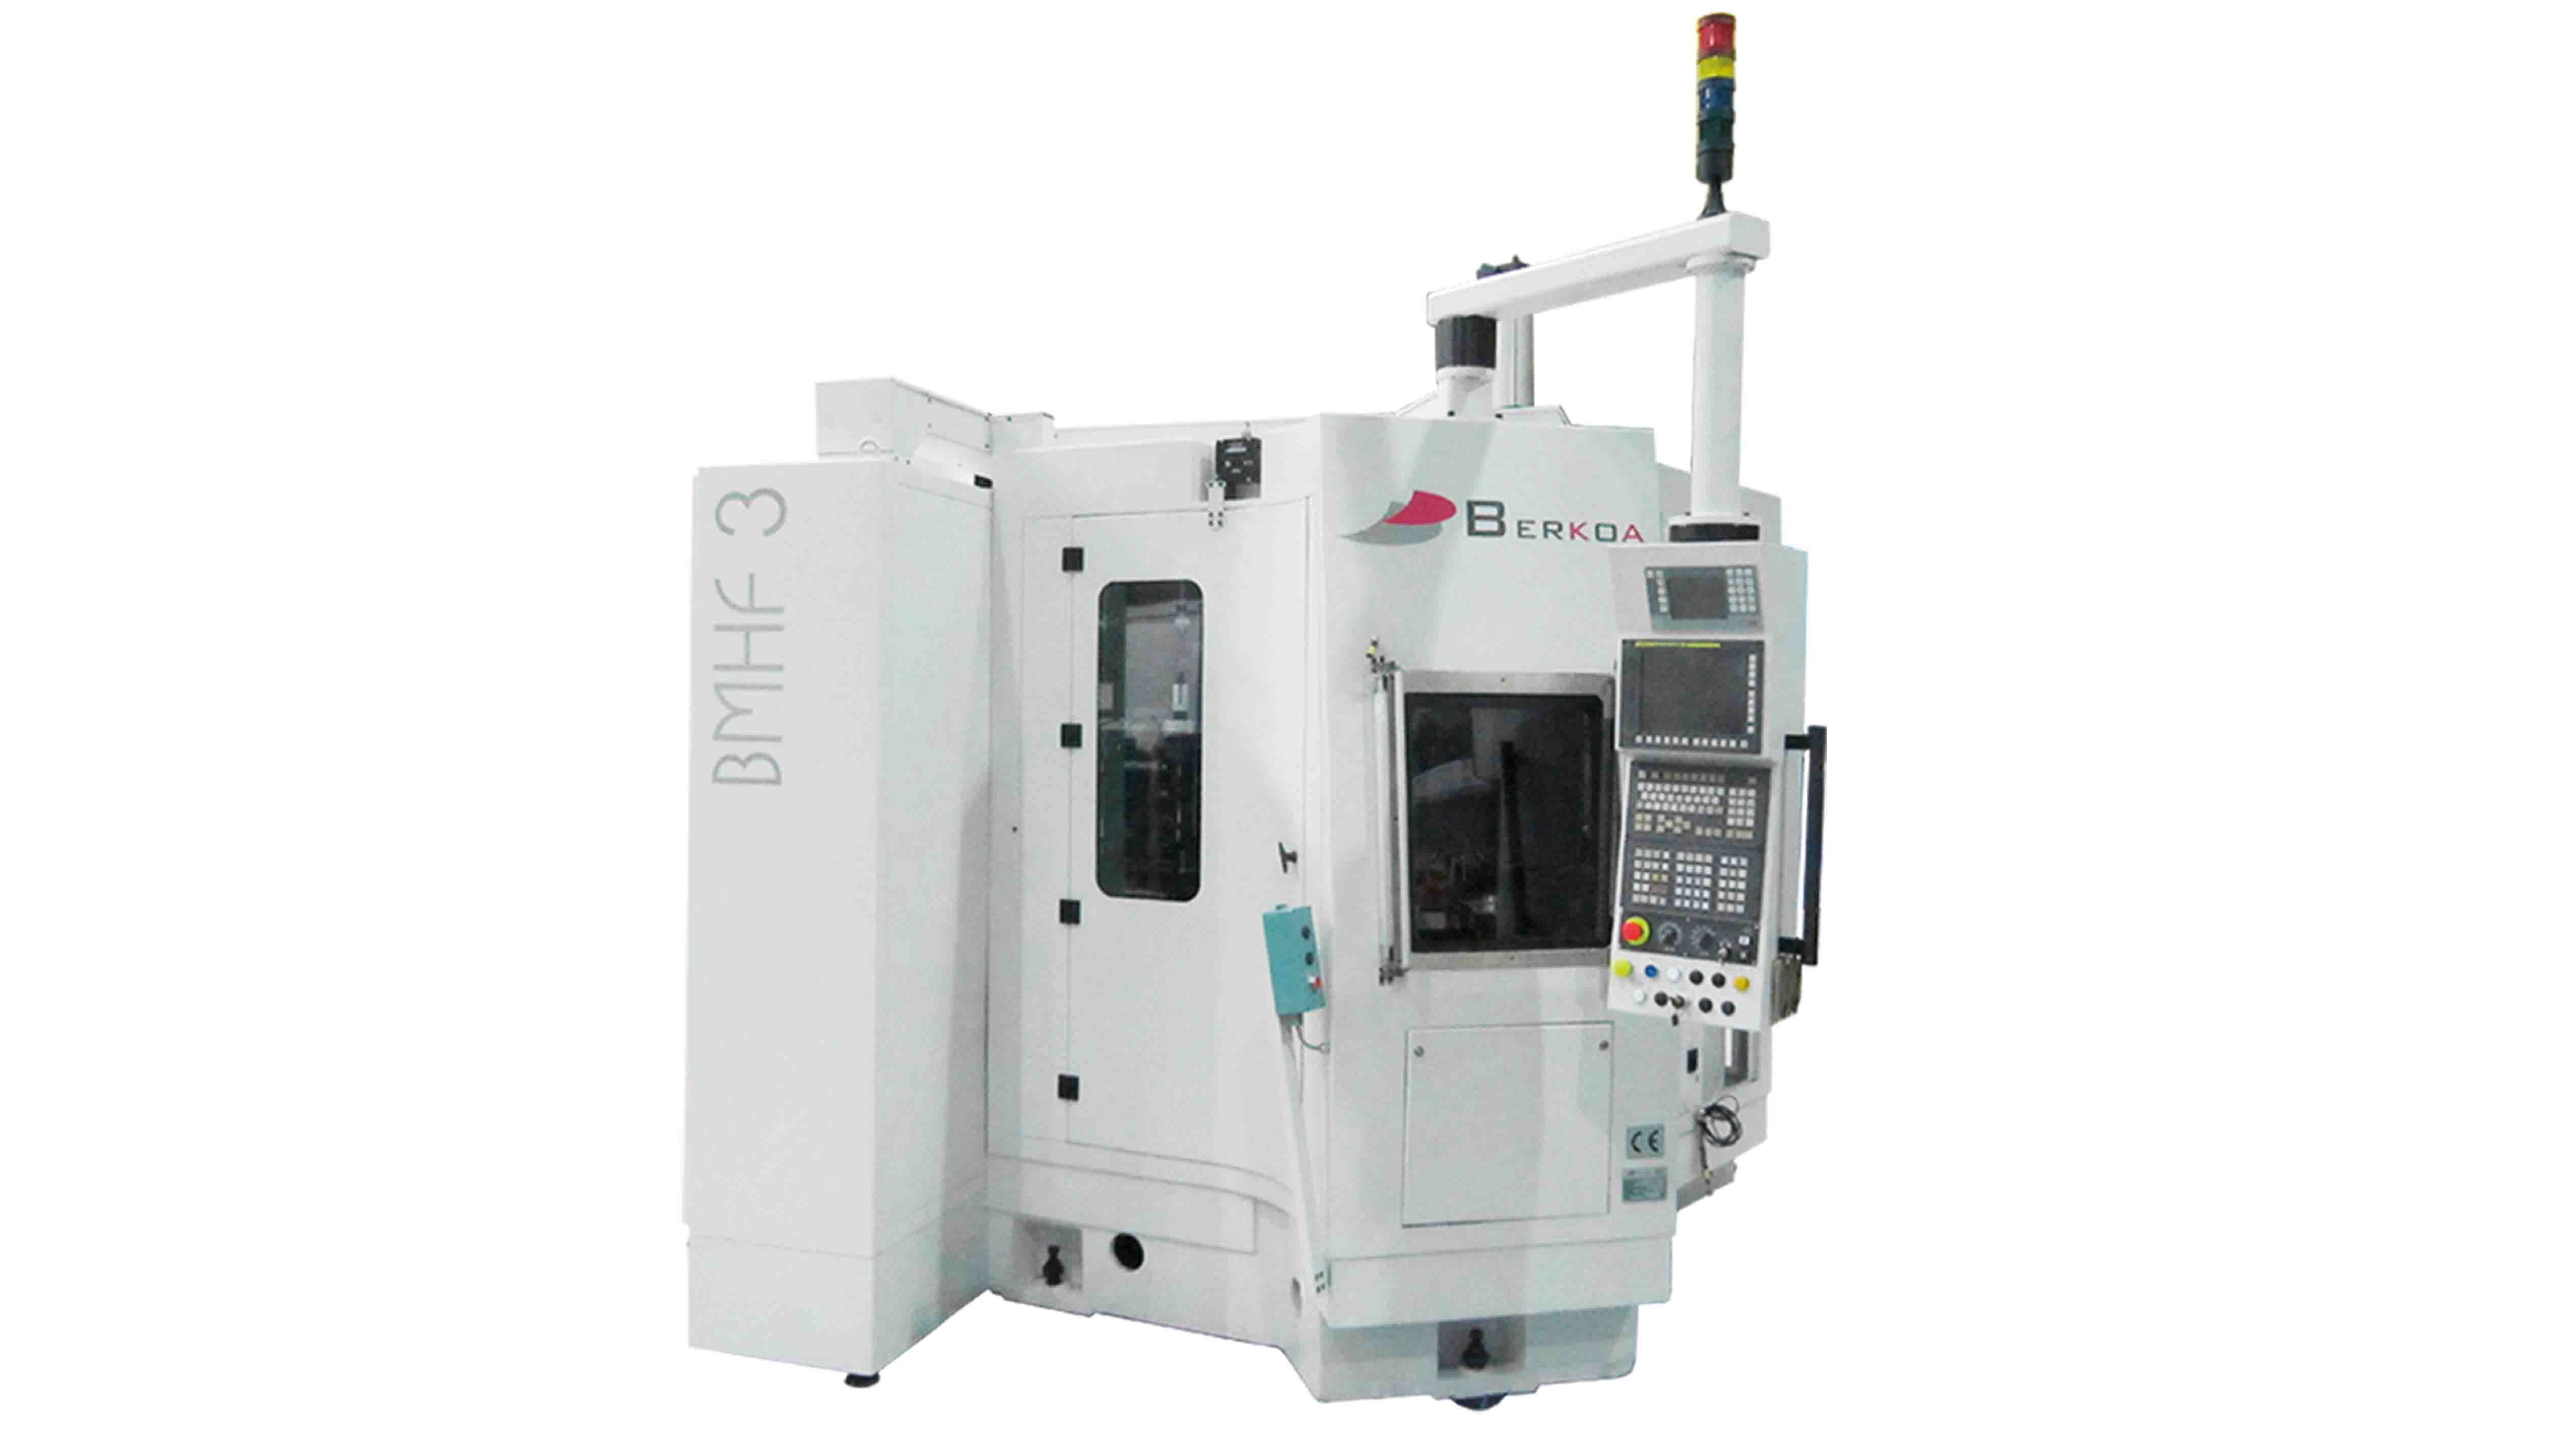 Precision table type boring and milling machines BMHF-3 vertical transfer boring machine